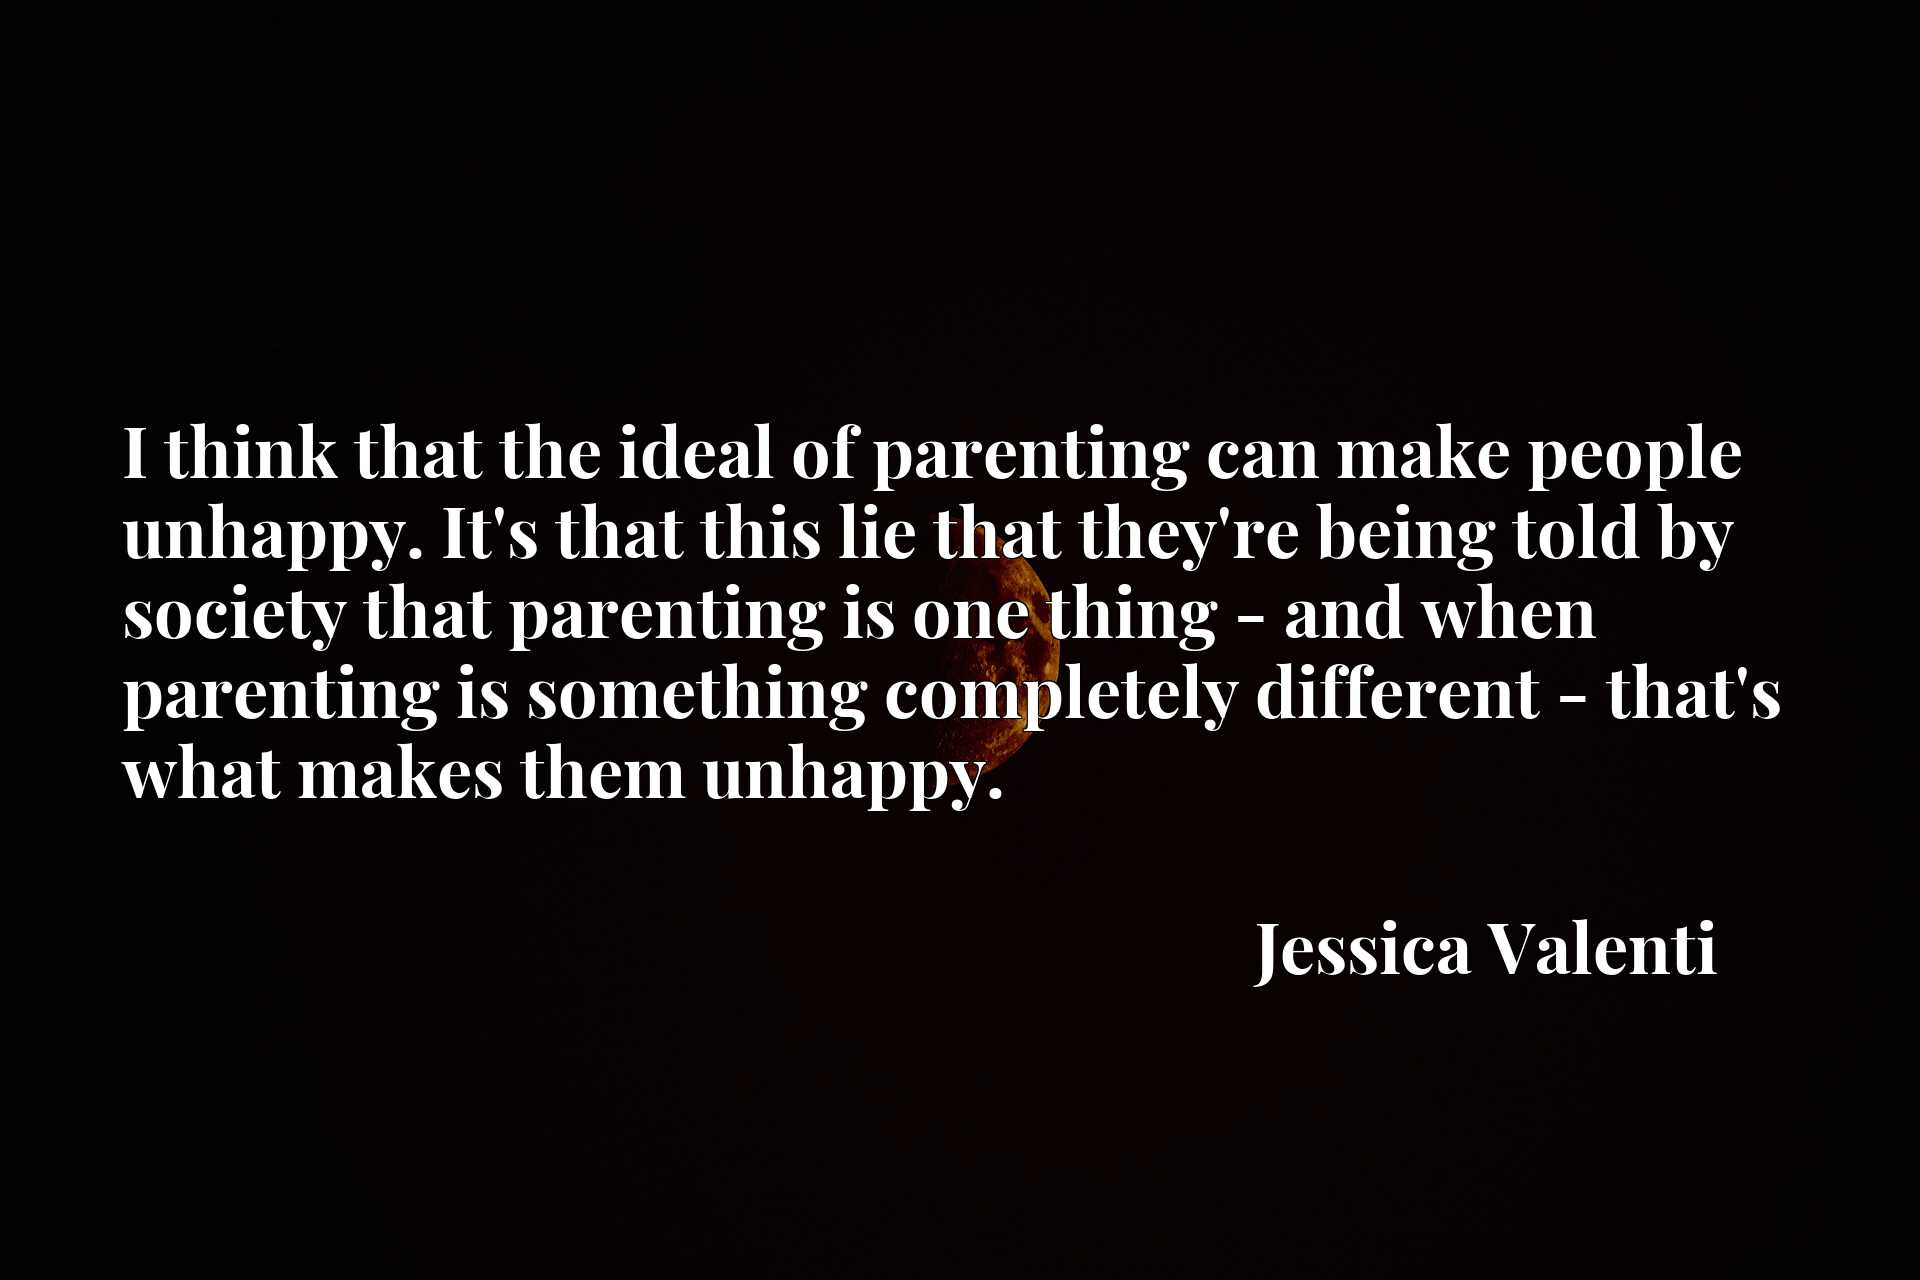 I think that the ideal of parenting can make people unhappy. It's that this lie that they're being told by society that parenting is one thing - and when parenting is something completely different - that's what makes them unhappy.